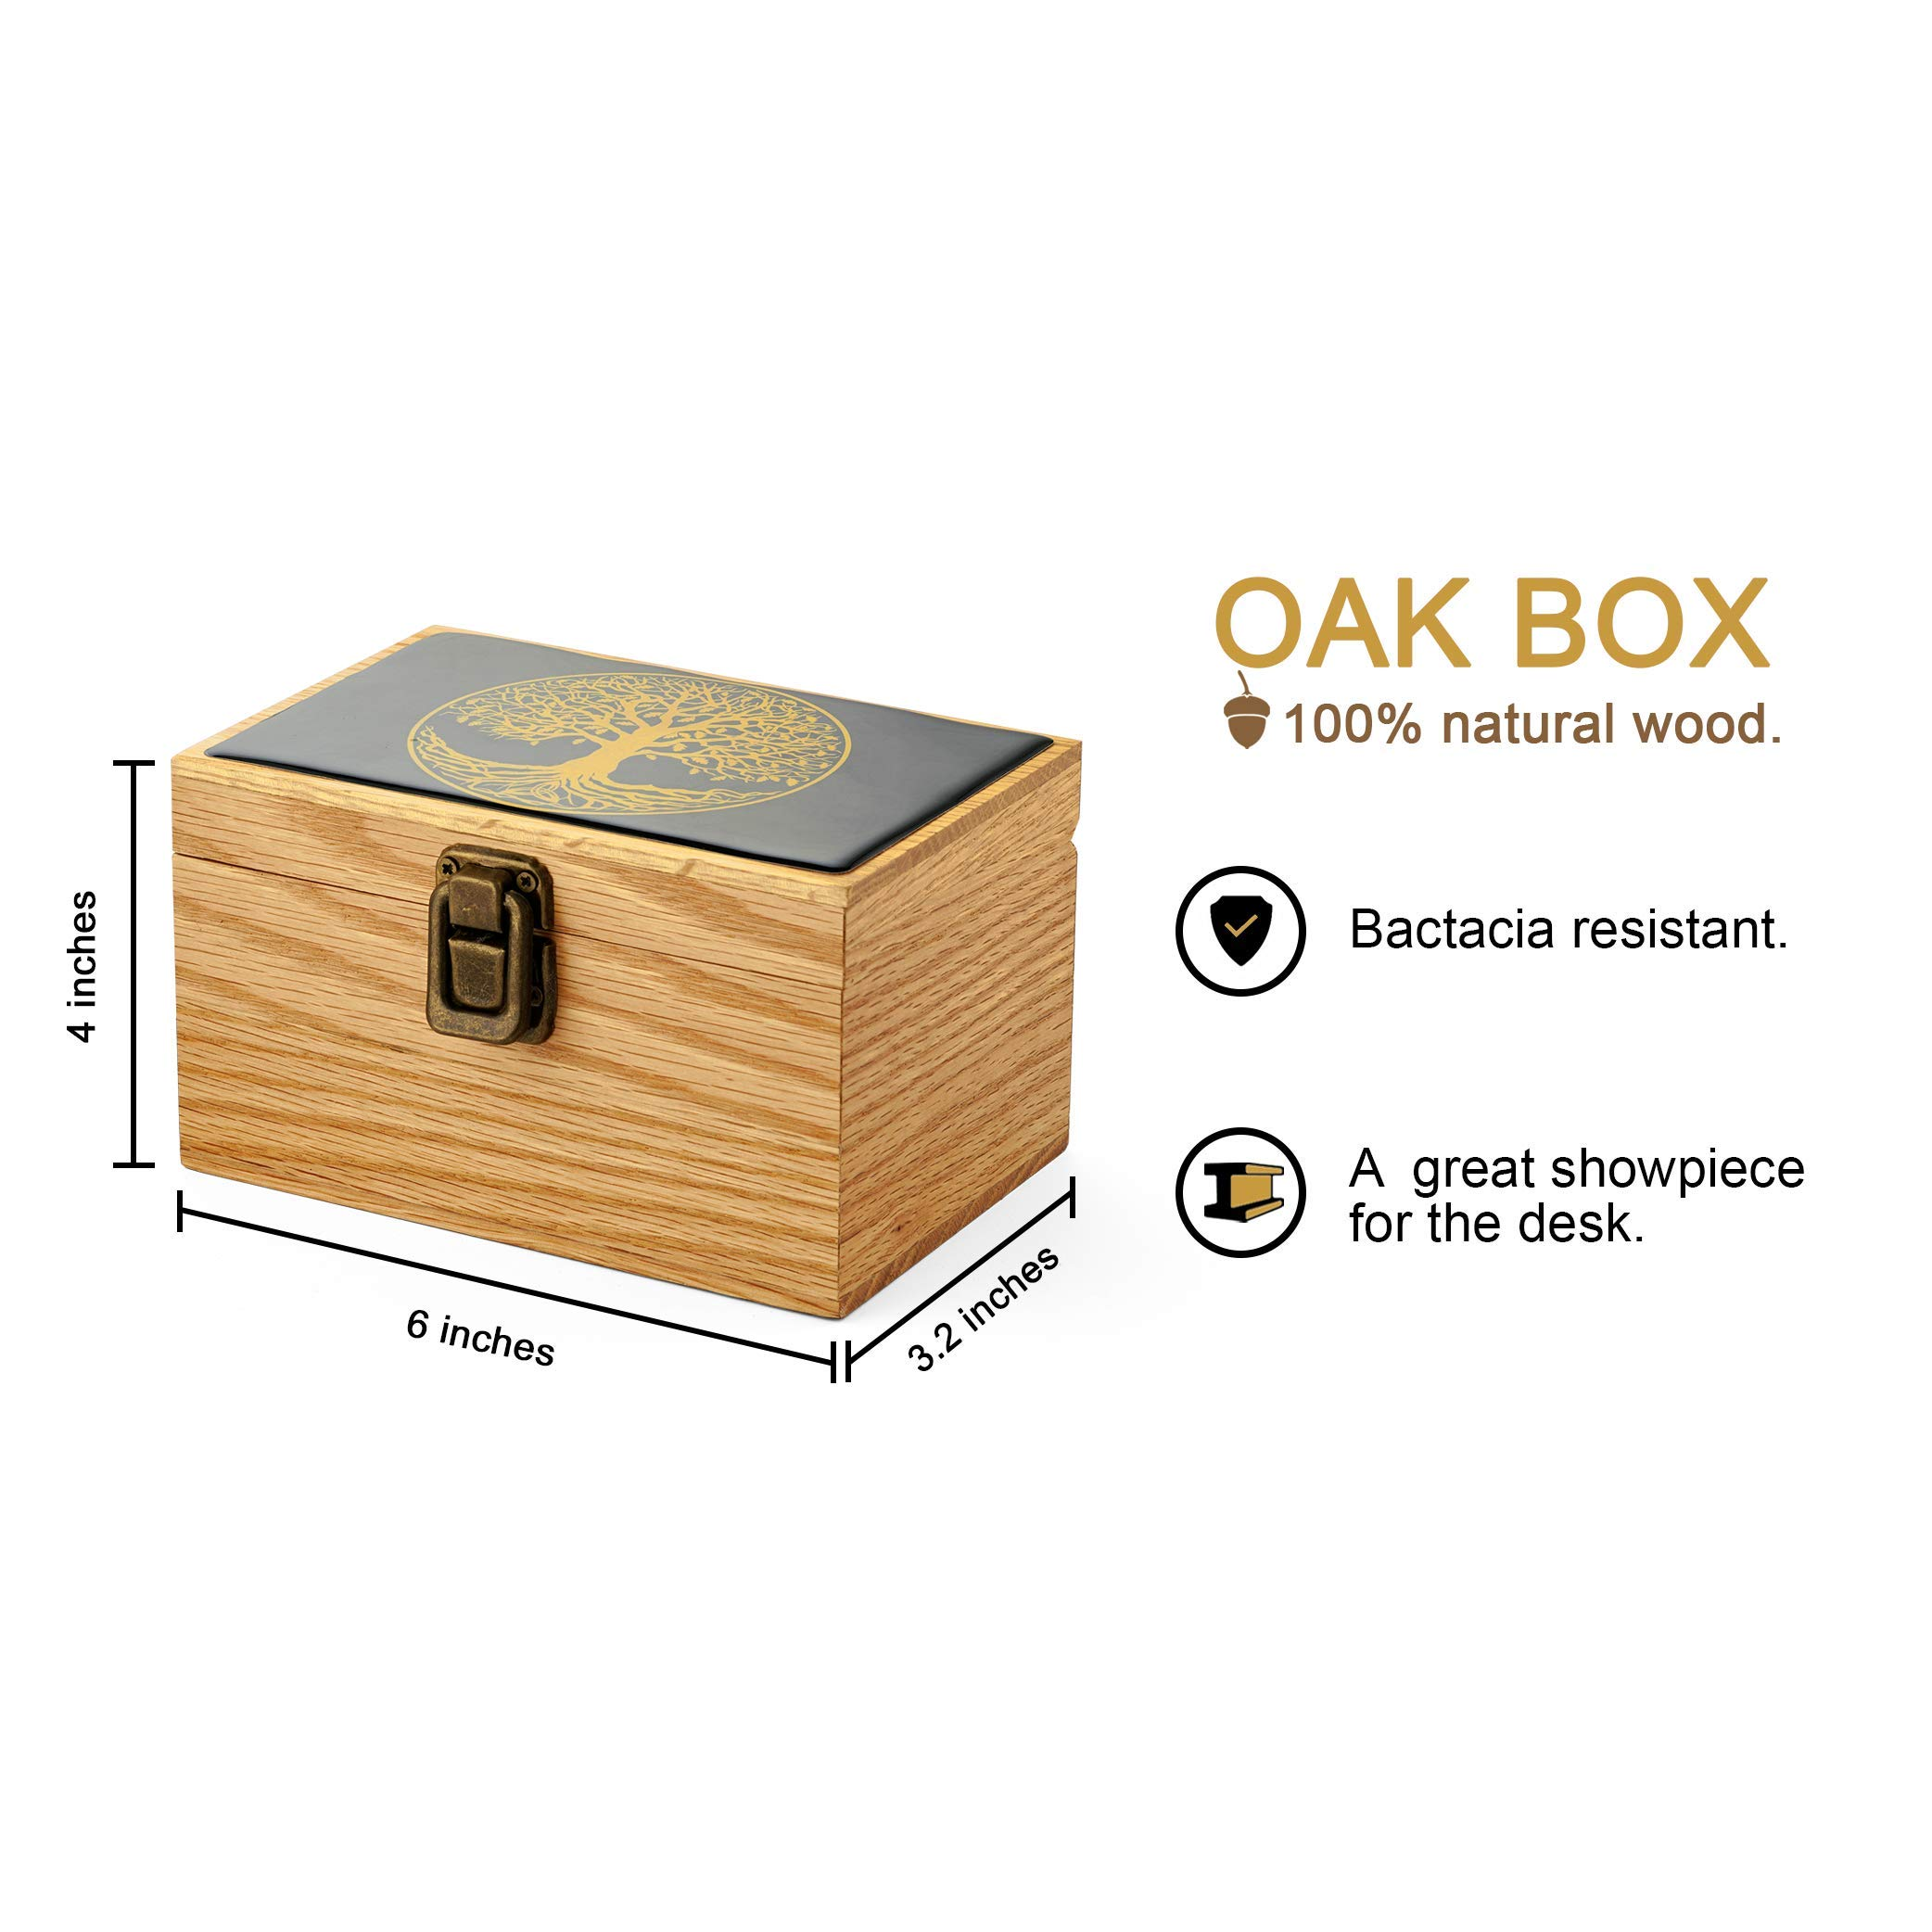 Tree of Life Oak Wood Stash Box Combo - Big Size Titanium 4 Part Herb Grinder - Airtight Wood Lid Glass Stash Jar - Engraved Wood Handmade Decorative Stash Box - Smell Proof and Airtight. (Oak)